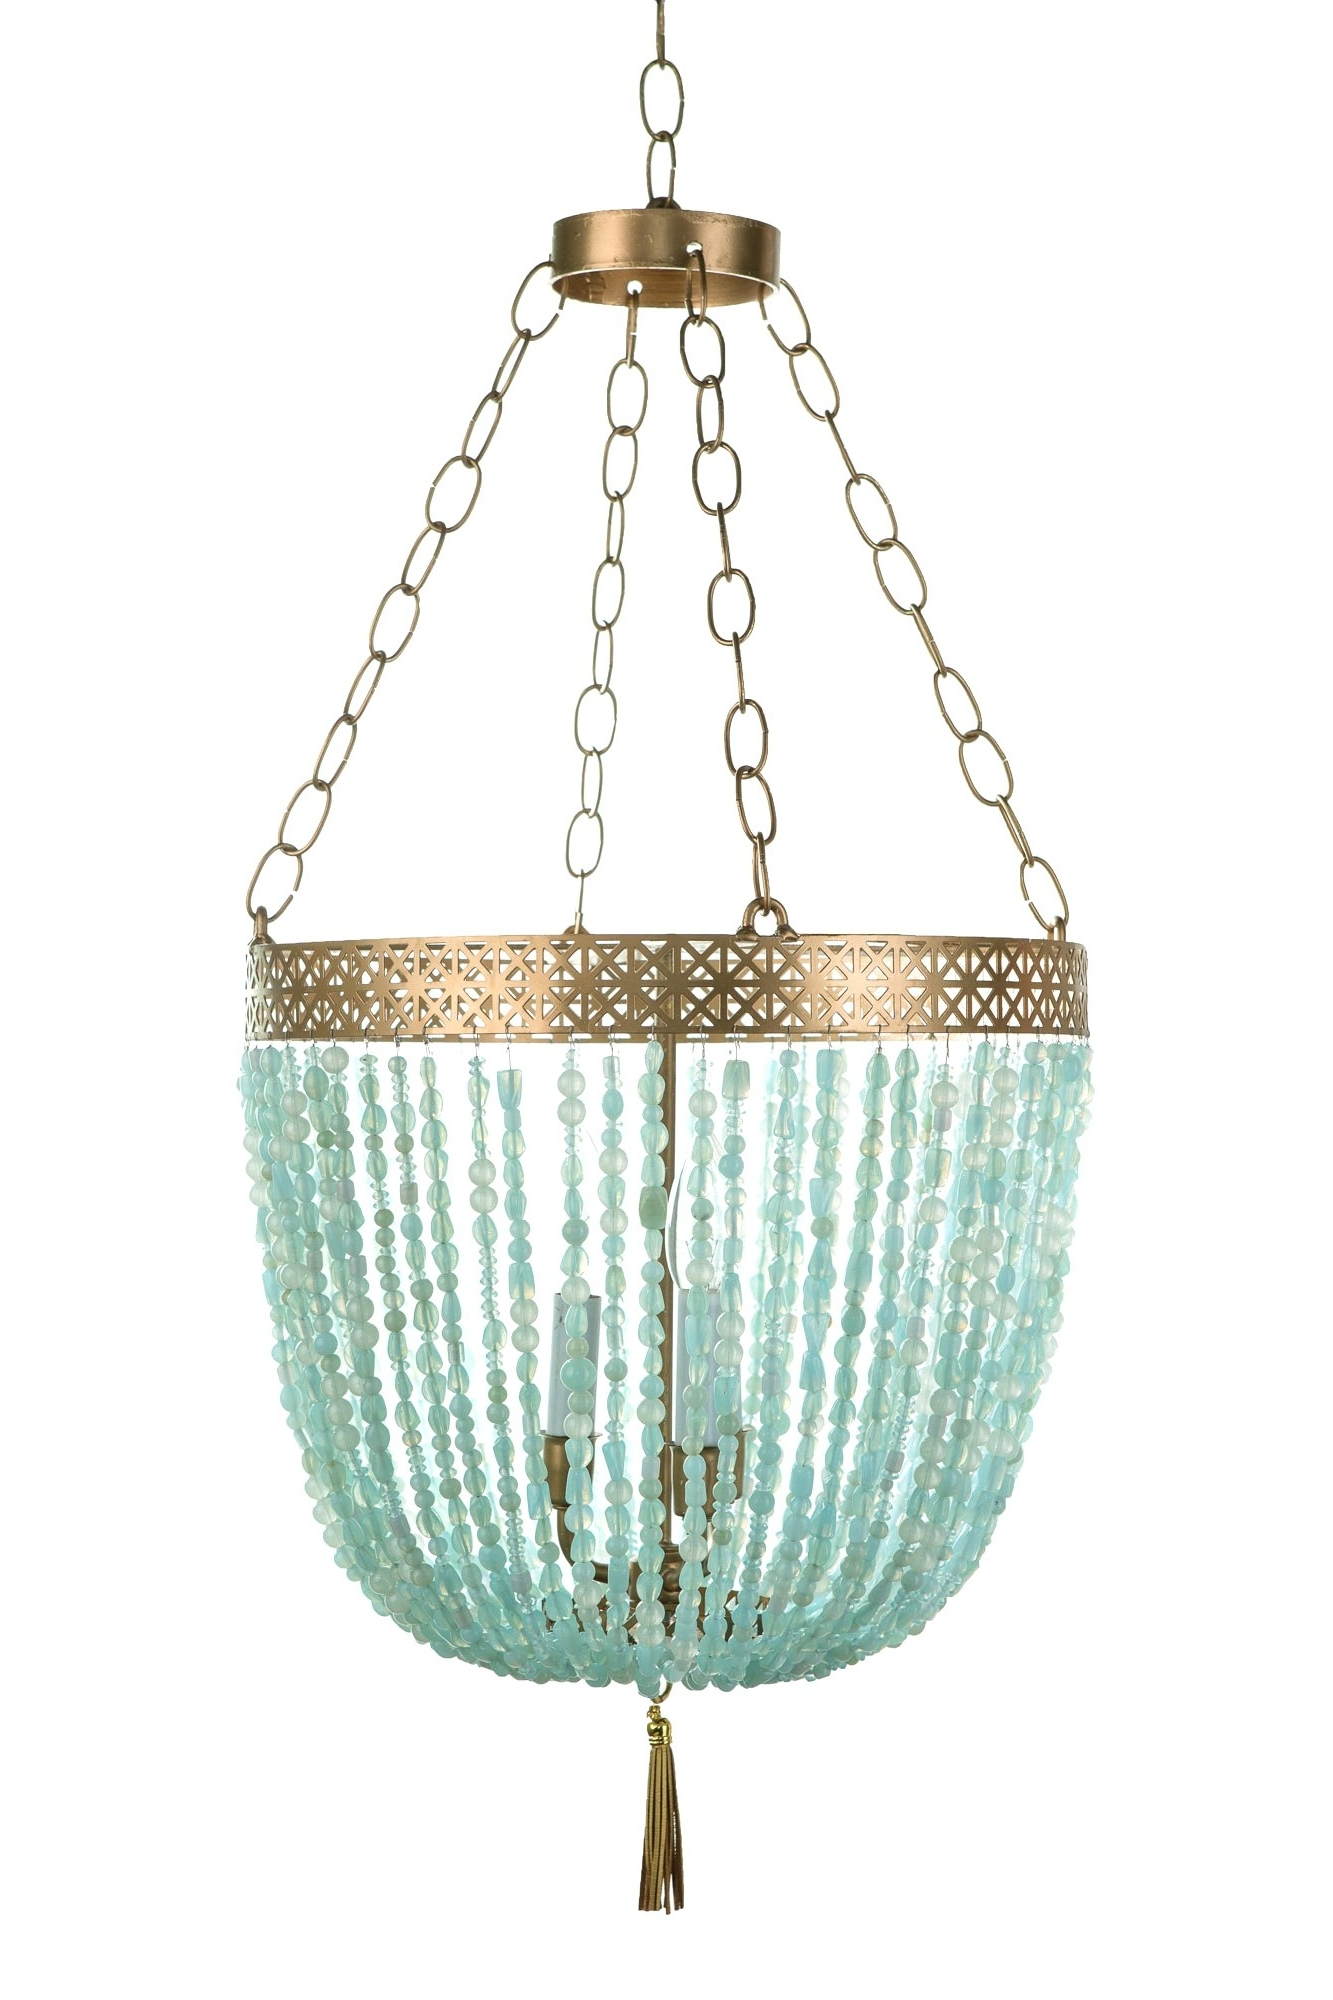 Trendy Turquoise And Gold Chandeliers Throughout Chandeliers Design : Magnificent Stylish Repair Turquoise Chandelier (View 12 of 20)